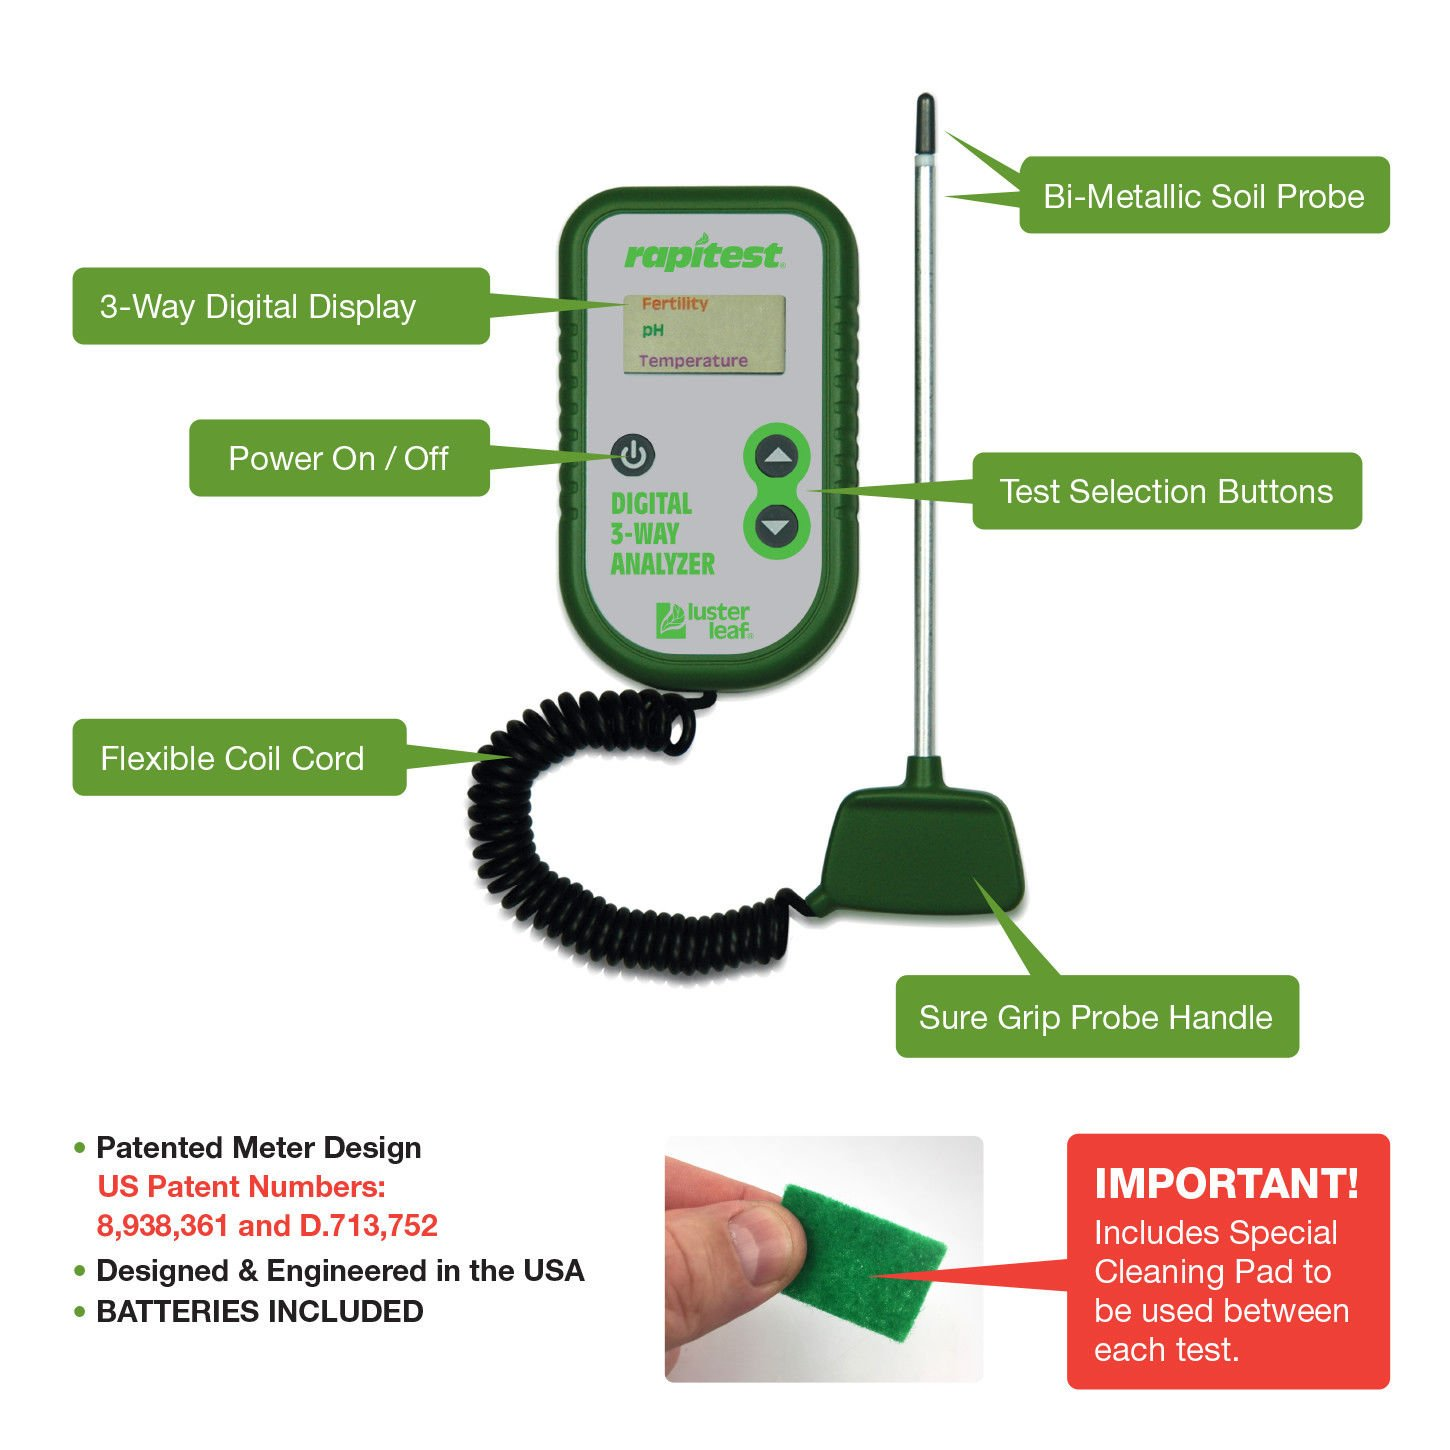 Simply Silver Soil Analyzer - Luster Leaf Rapitest Electronic 3-Way Soil Analyzer - pH, Temperature, Fertility